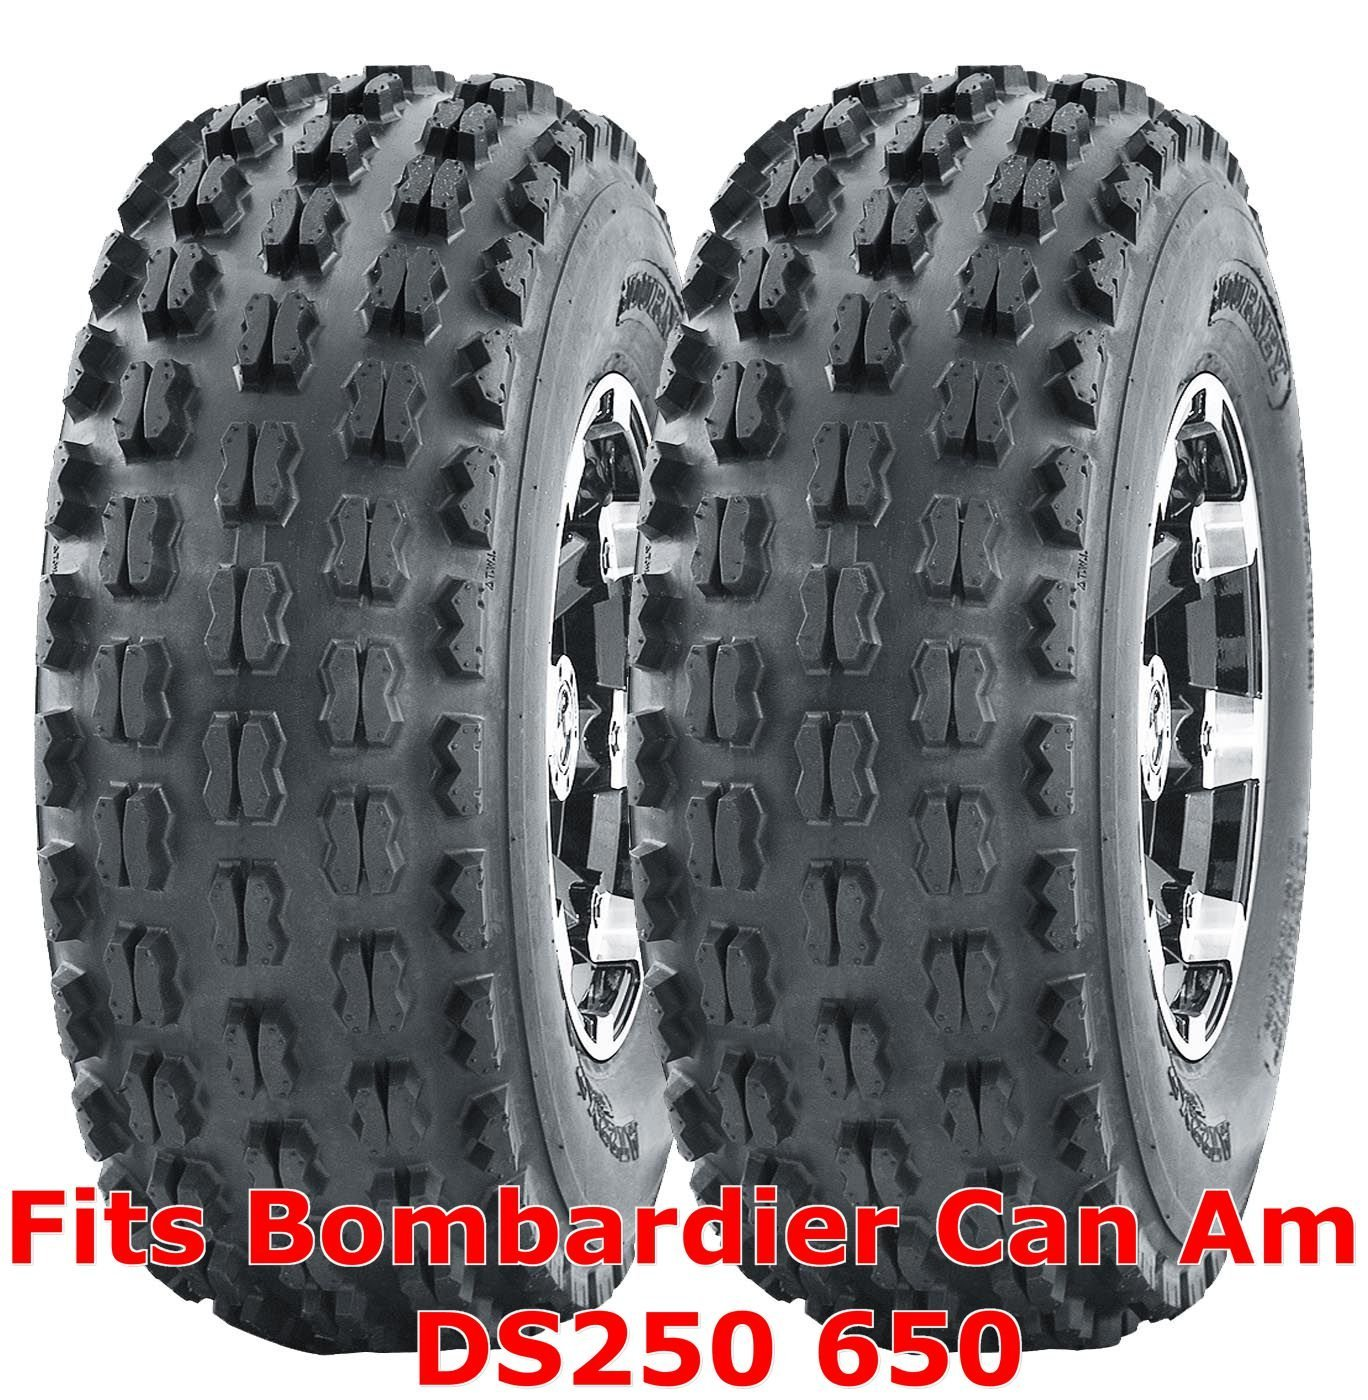 20x11-9 20x11x9 ATV Rear Tire Set Can Am Bombardier DS250 650 GNCC Racing